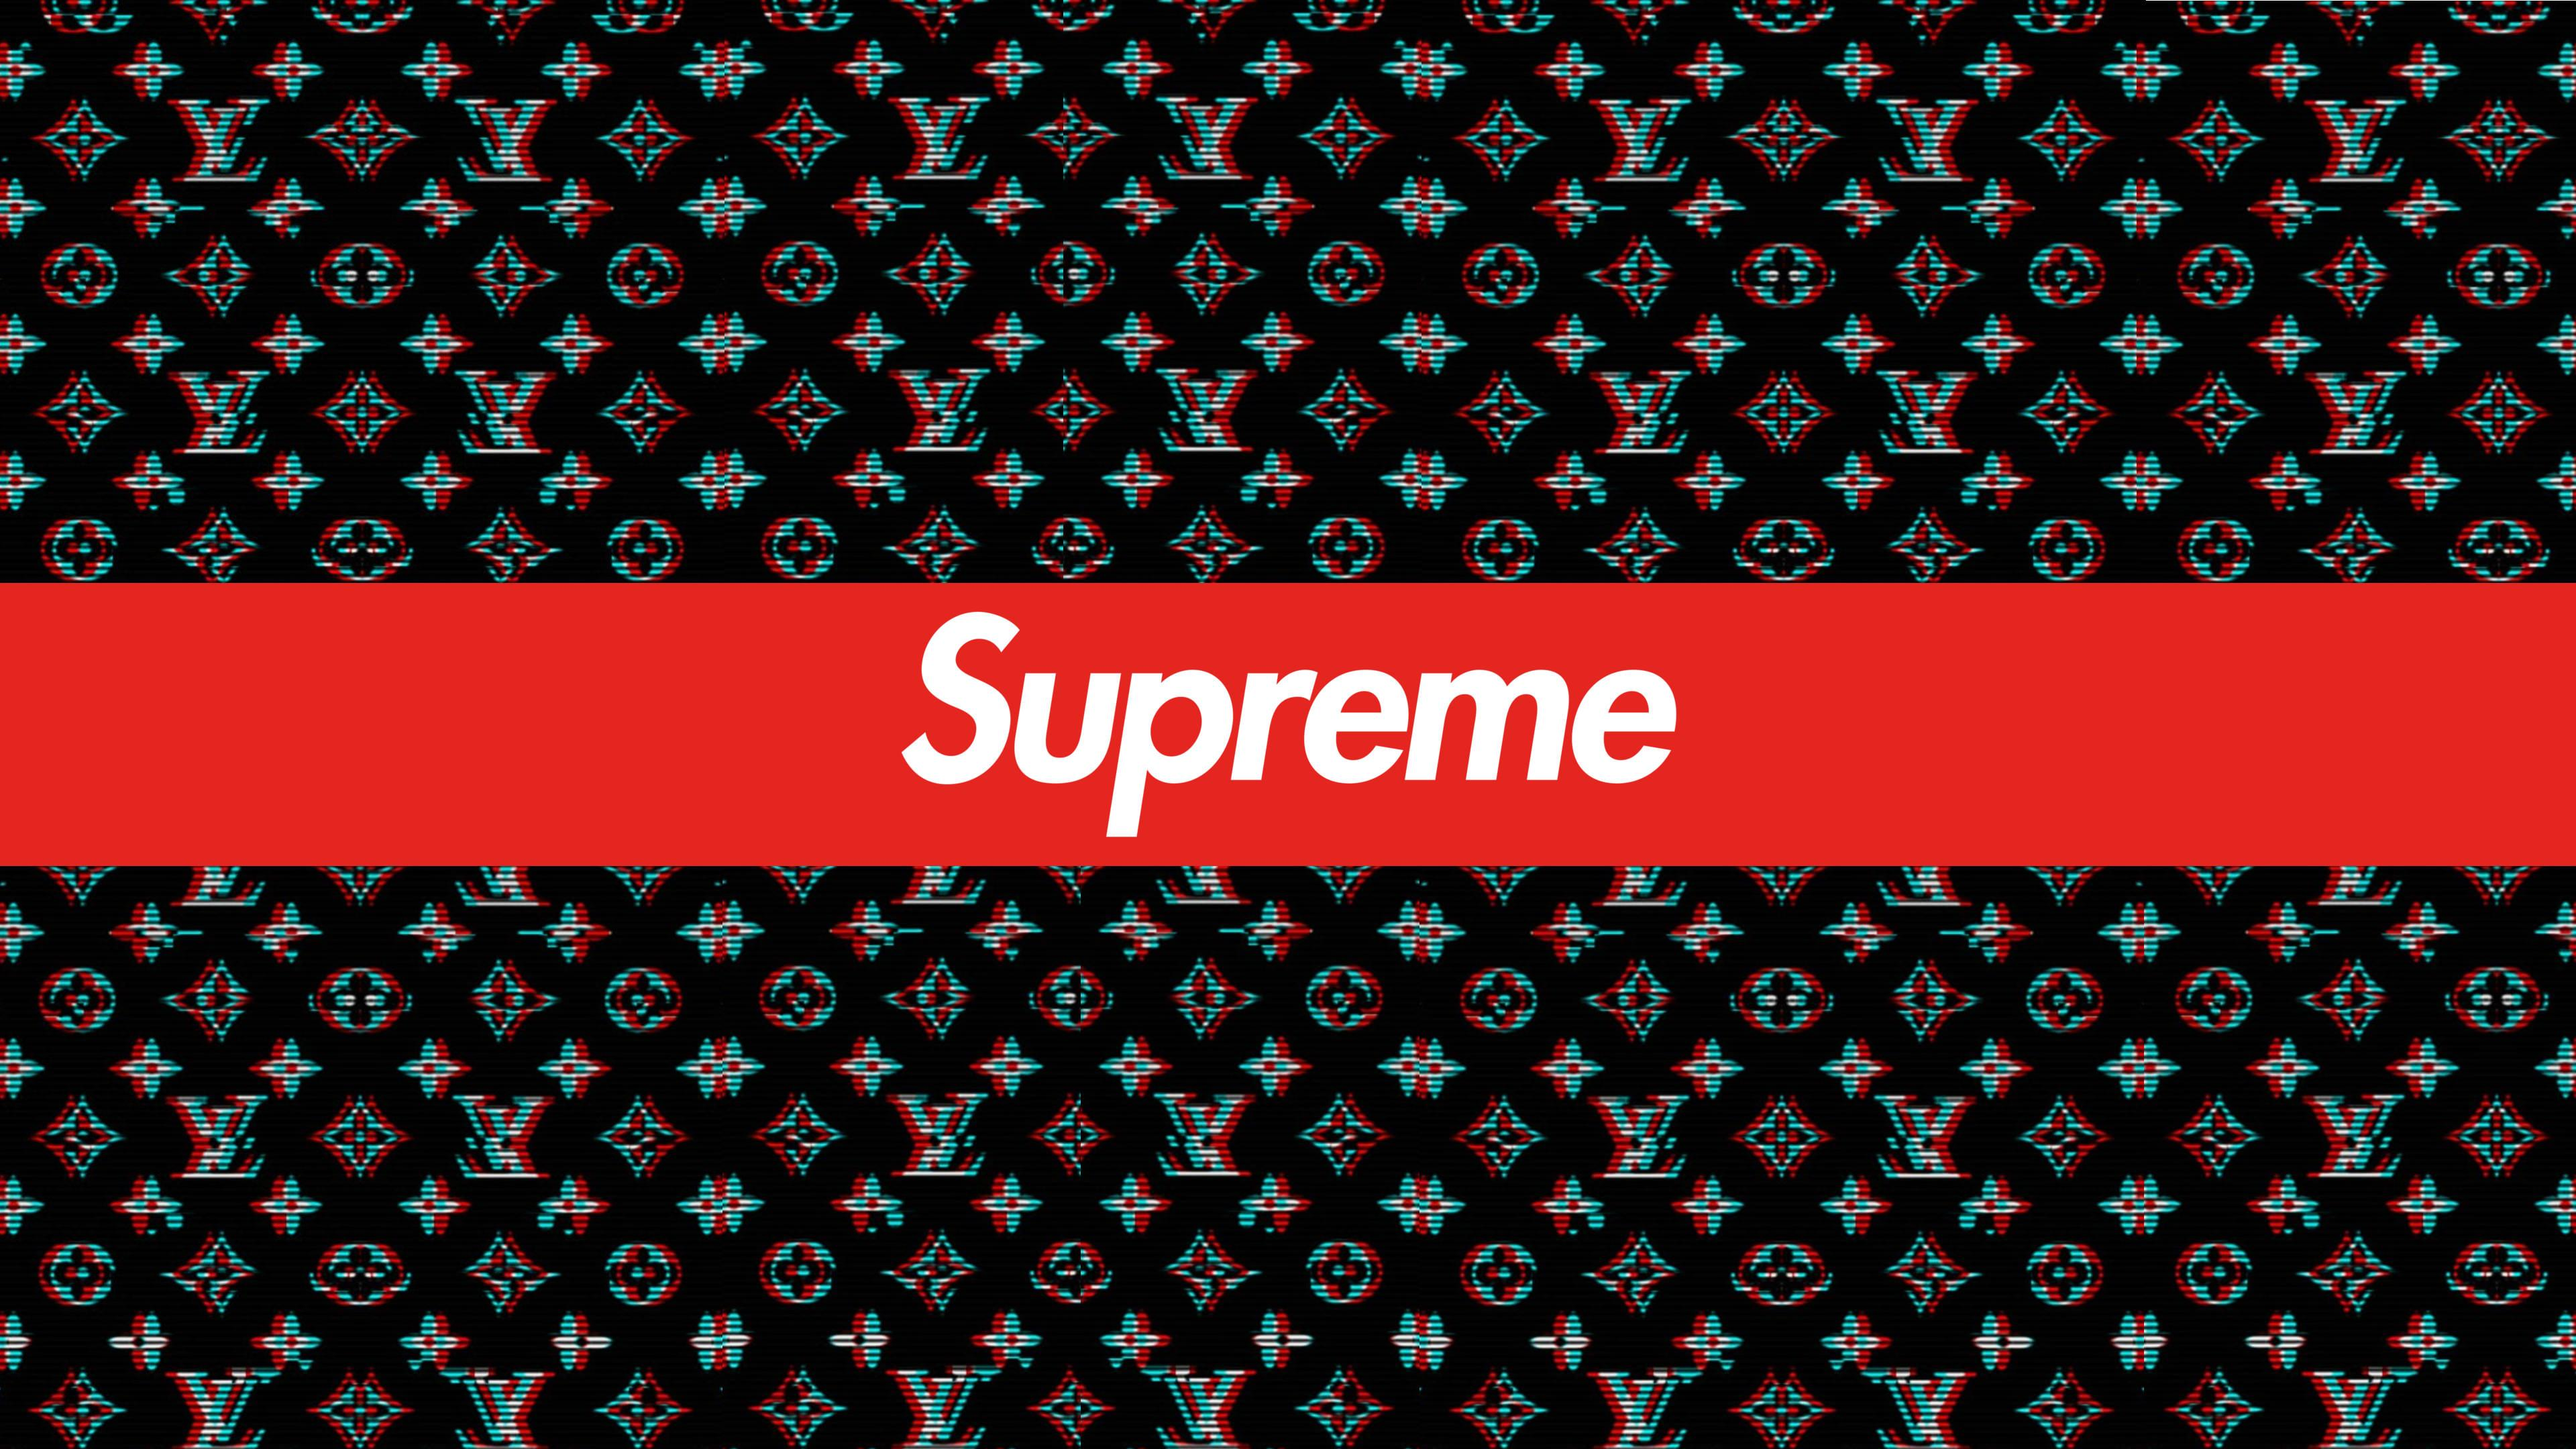 Supreme Brand Wallpapers Top Free Supreme Brand Backgrounds